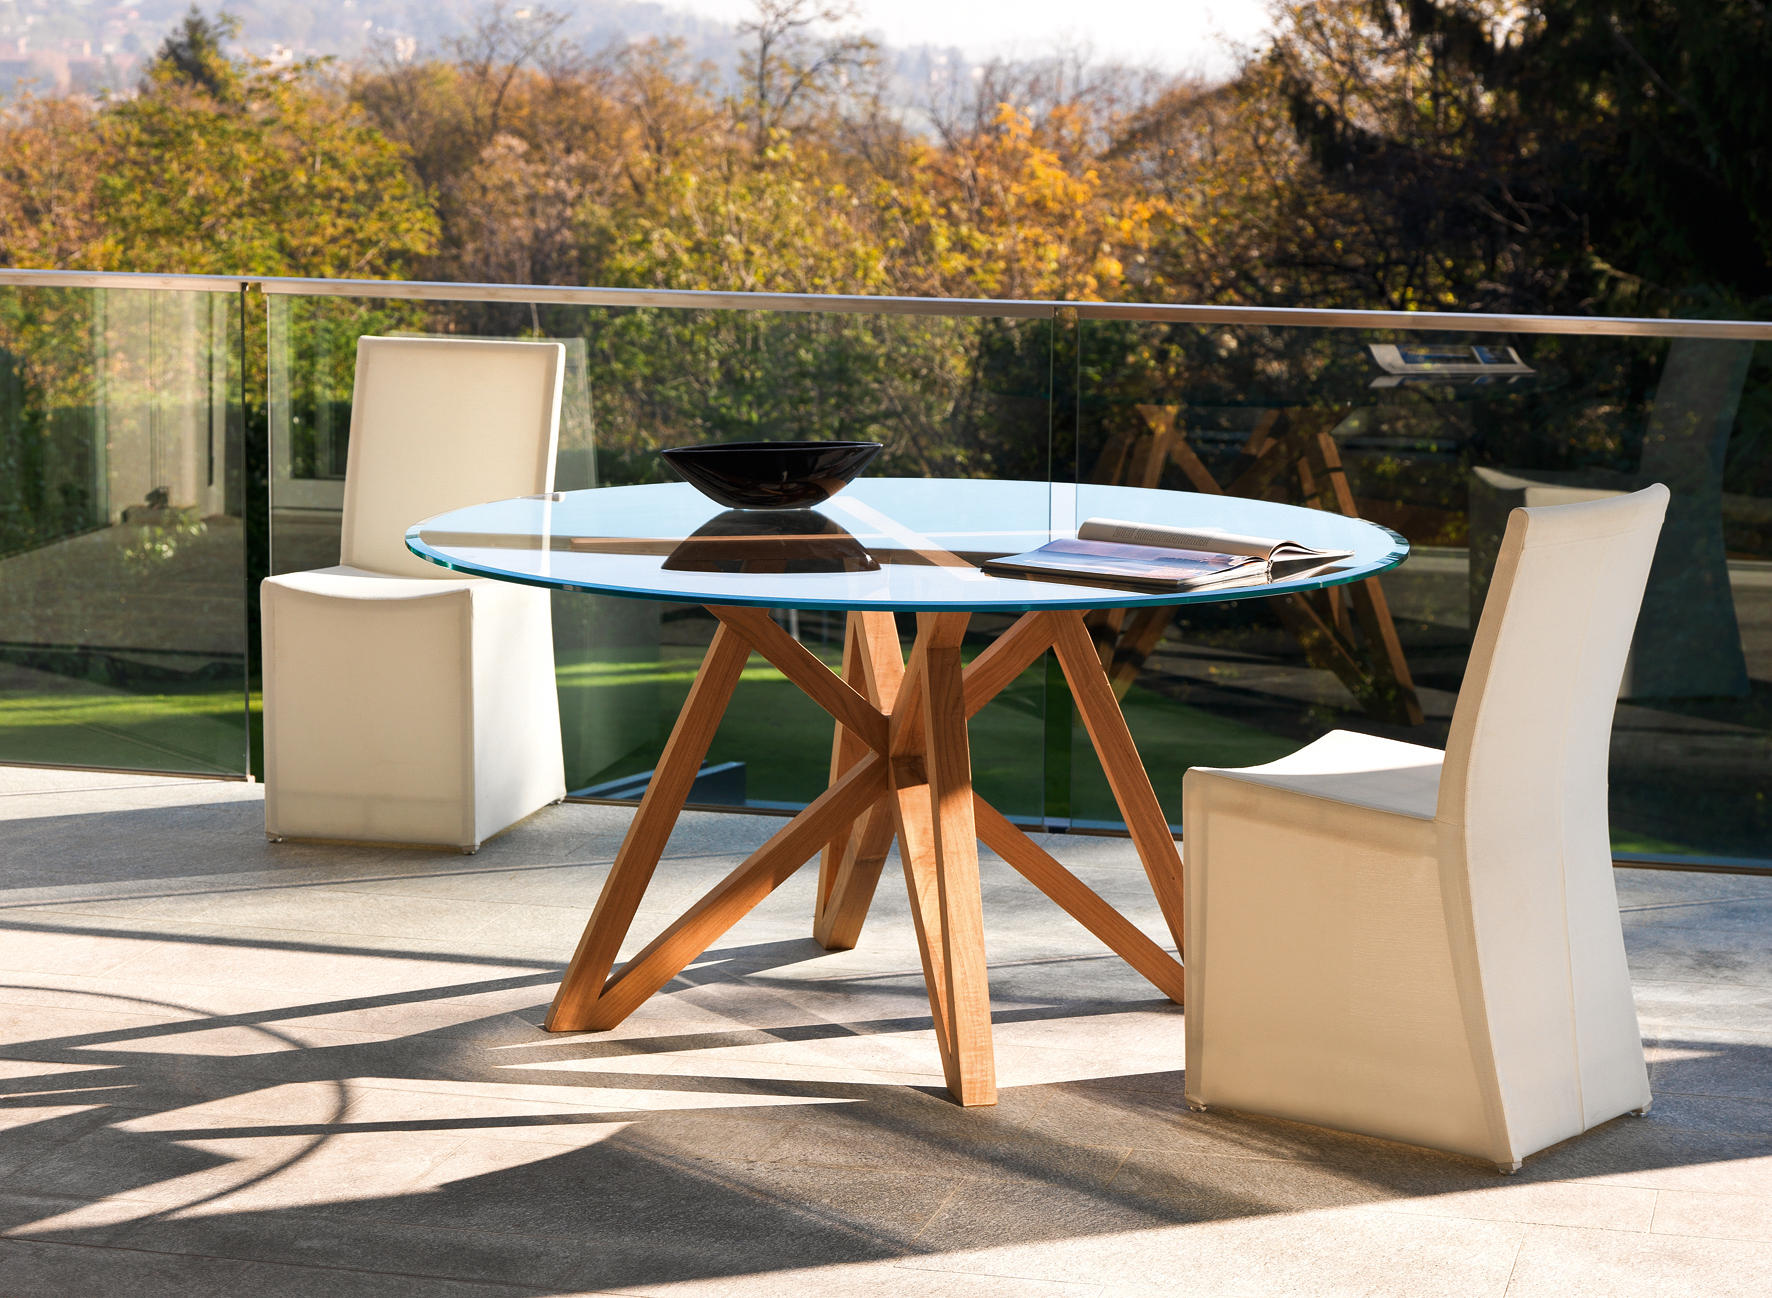 croisette table dining tables from unopi architonic